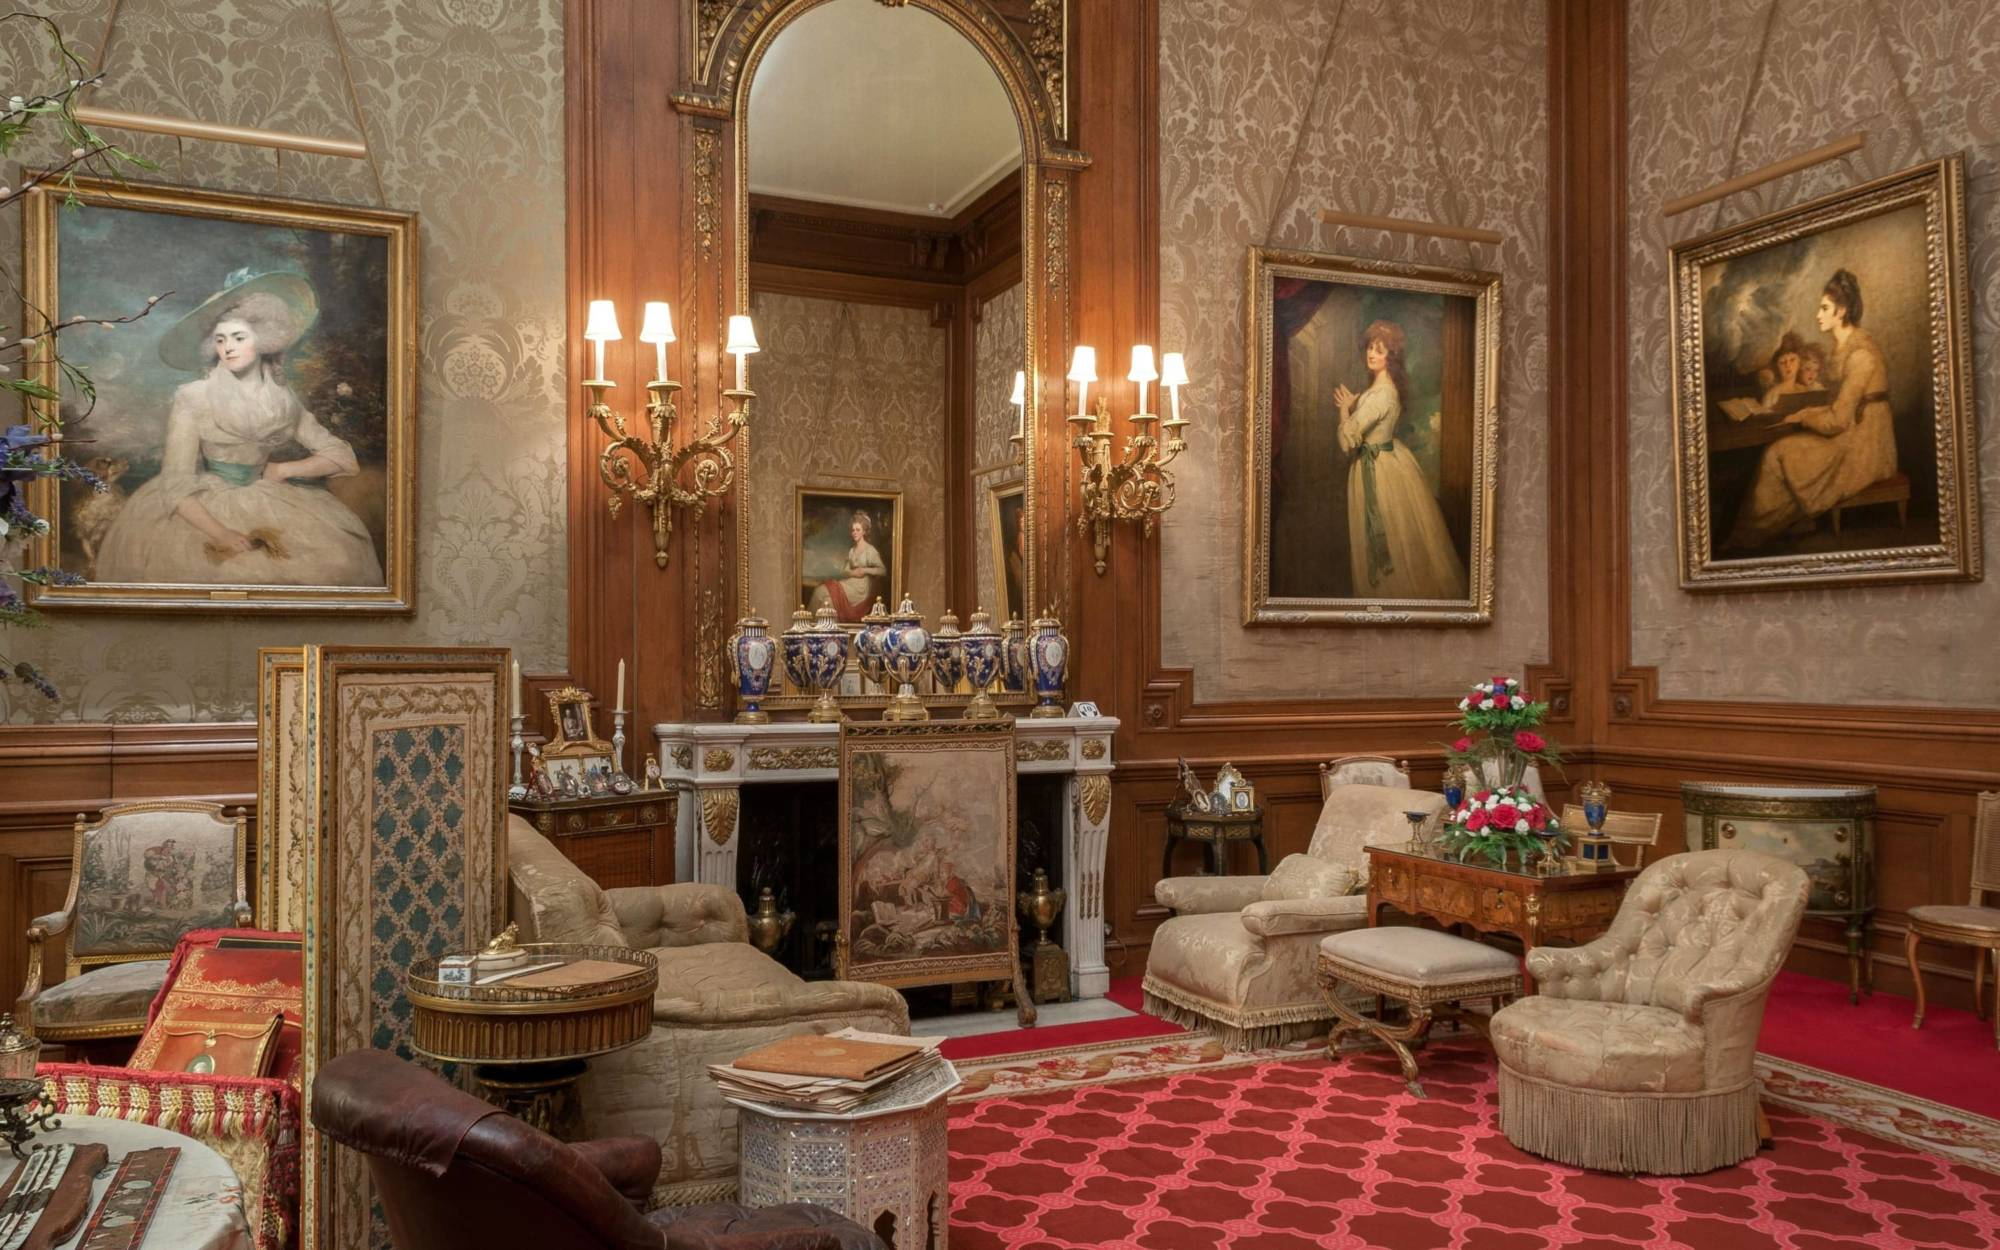 The barons room at Waddesdon Manor